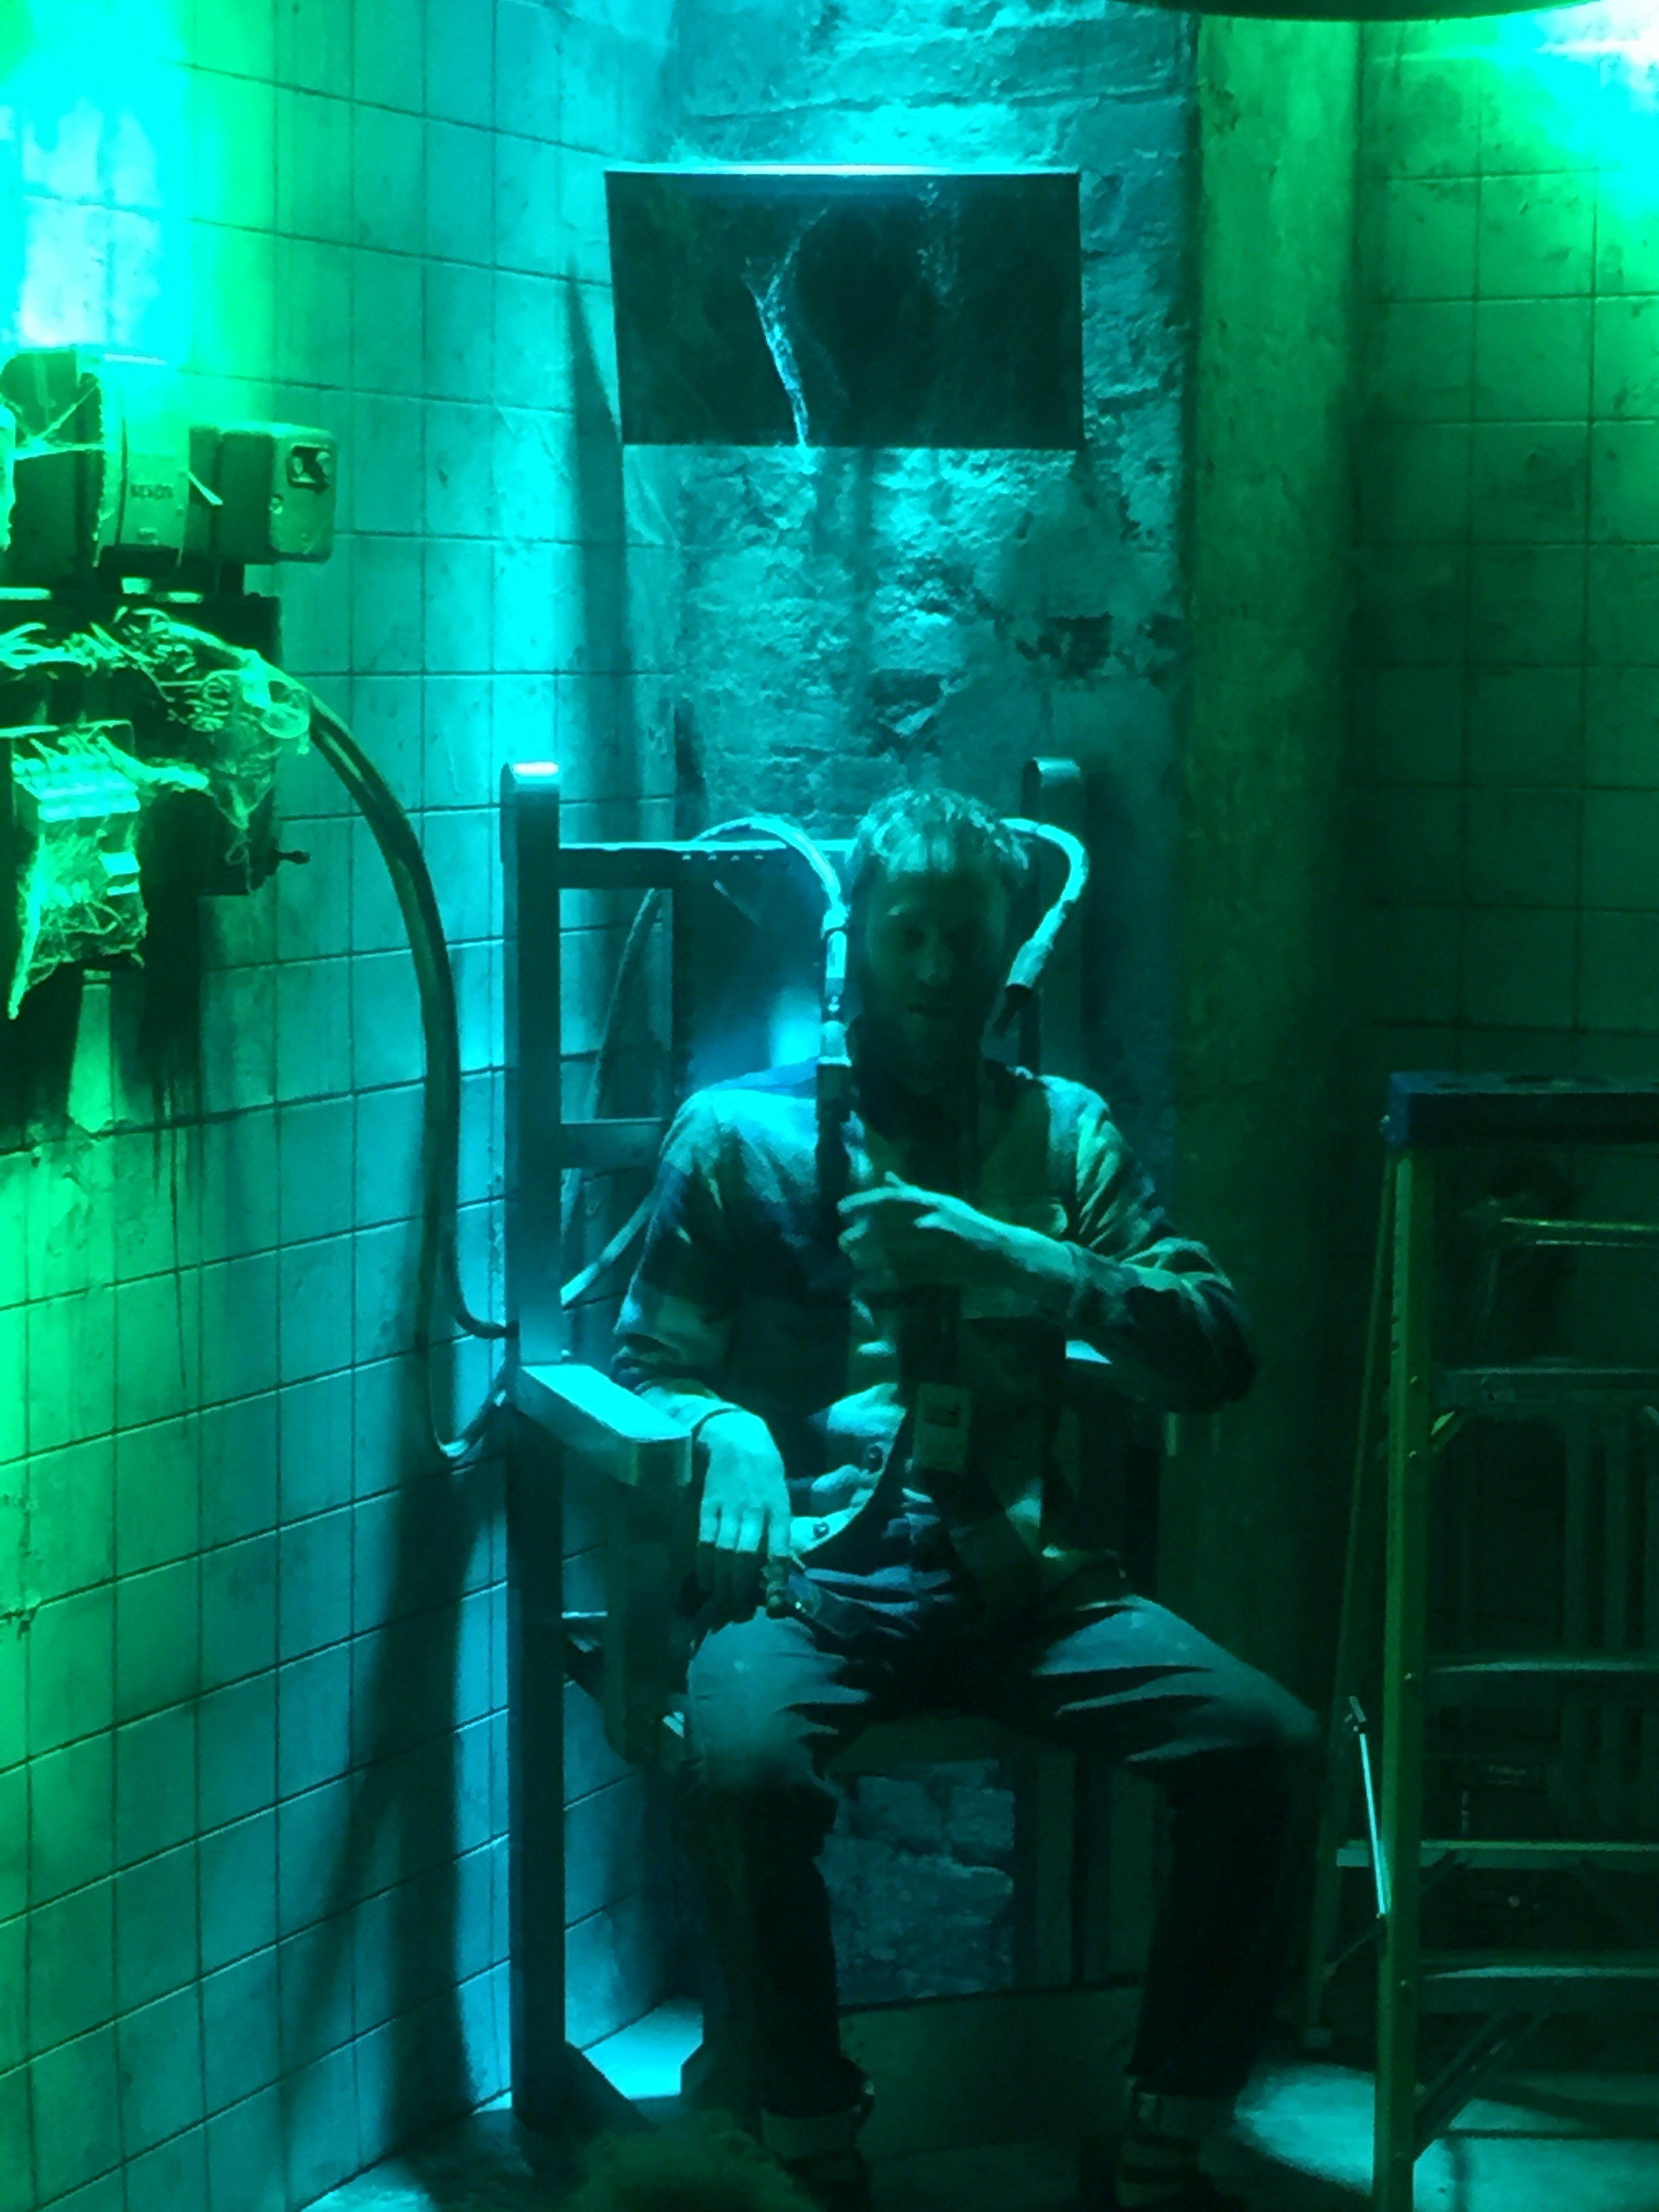 man lit in green and blue on electric chair.